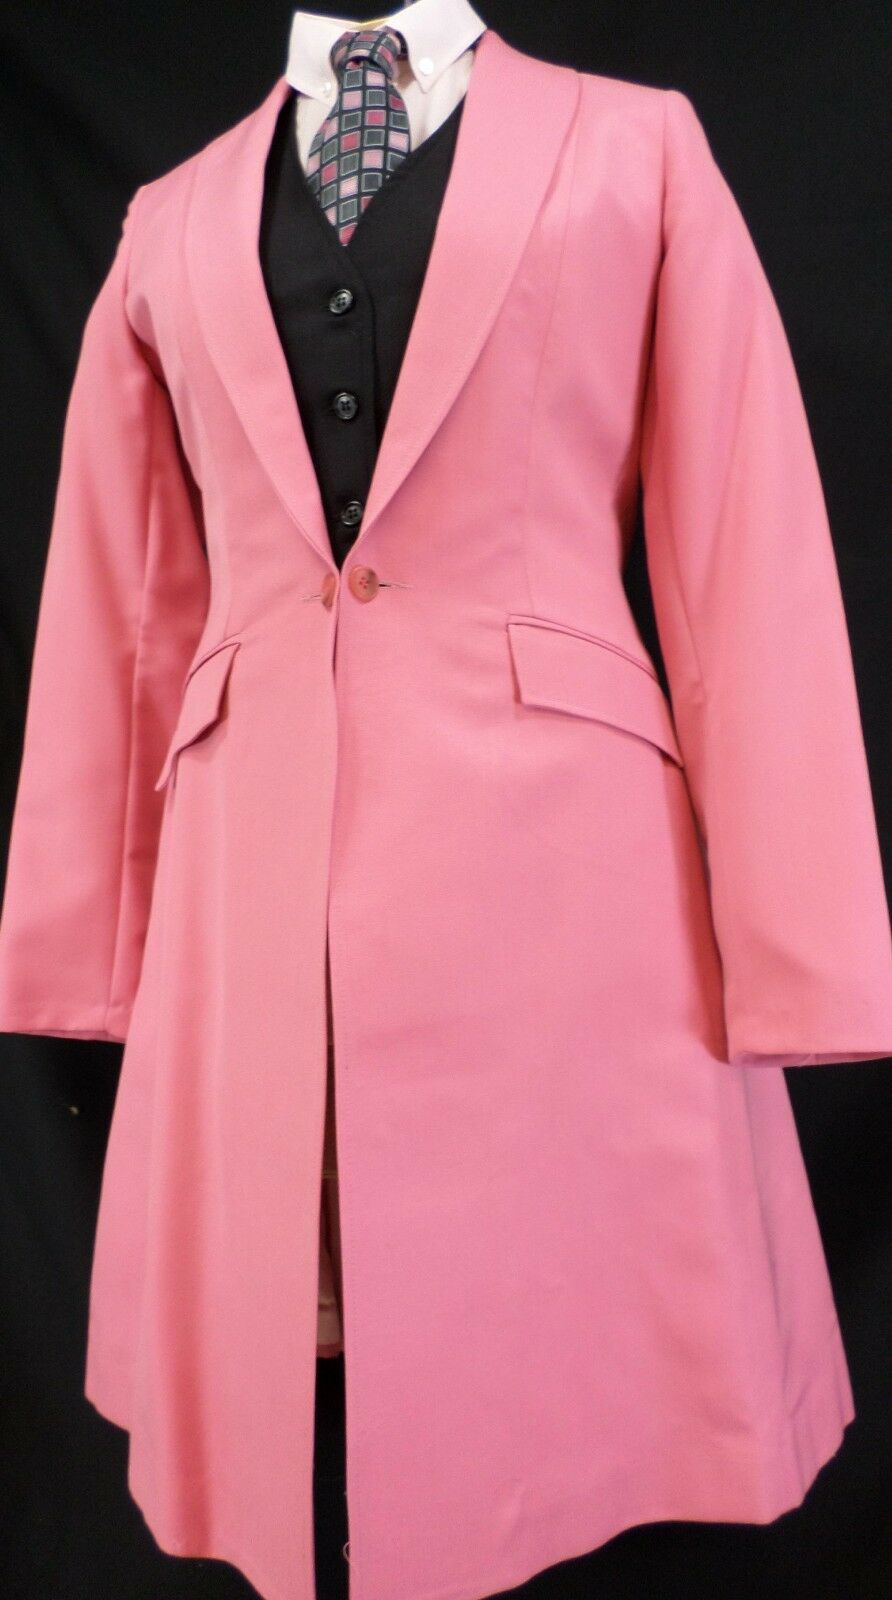 Reed Hill Ladies Saddleseat Day Coat ROSE rosa Poly / Wool Blend size 16 - USA